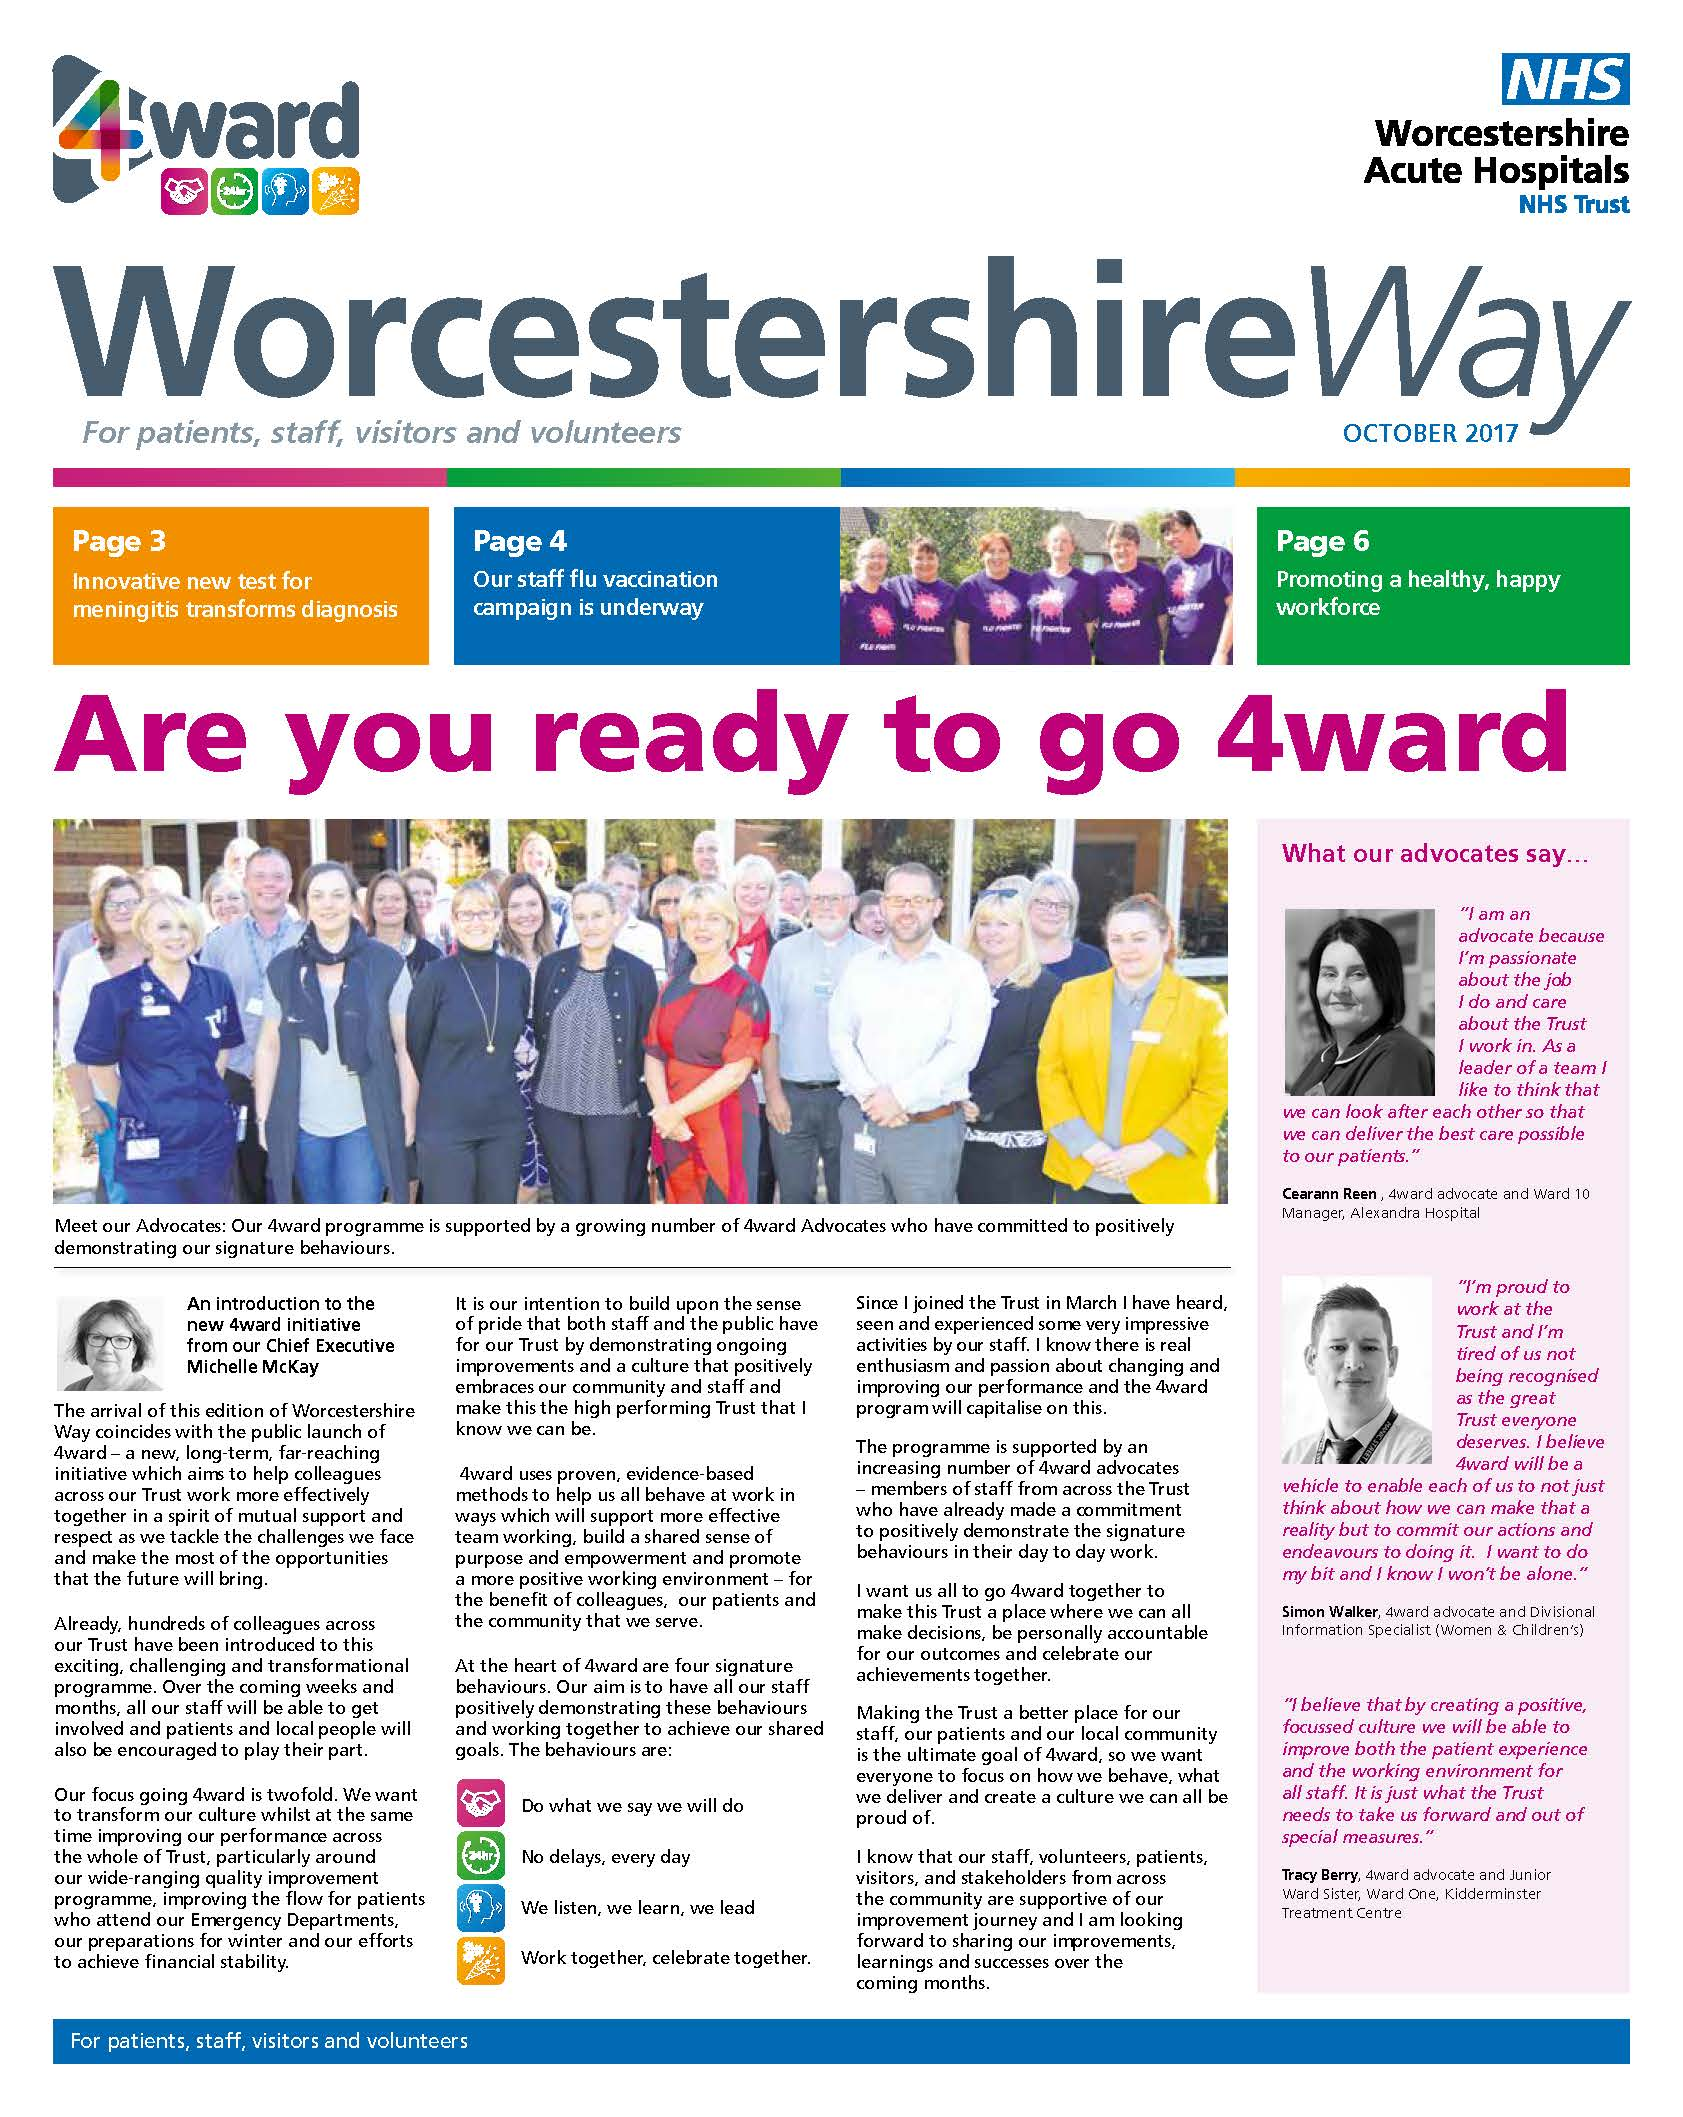 Worcestershire Way Oct 2017 web Page 1